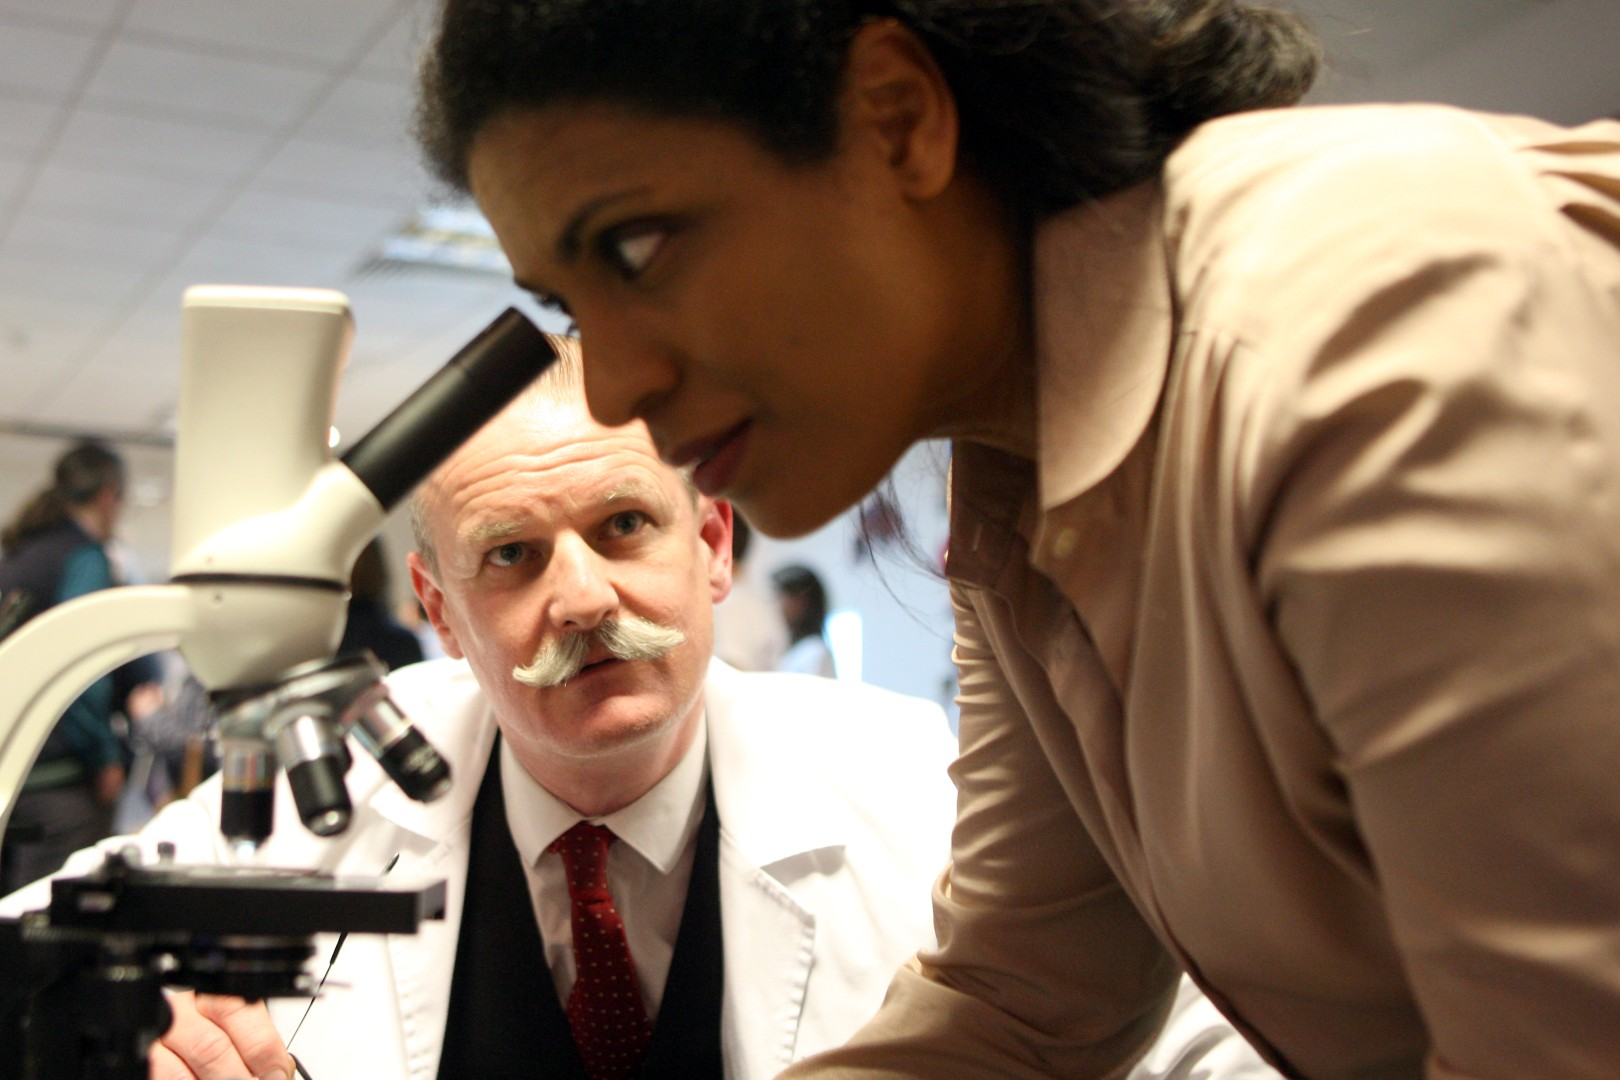 A woman looks into a microscope as a mustachioed biologist watches on.